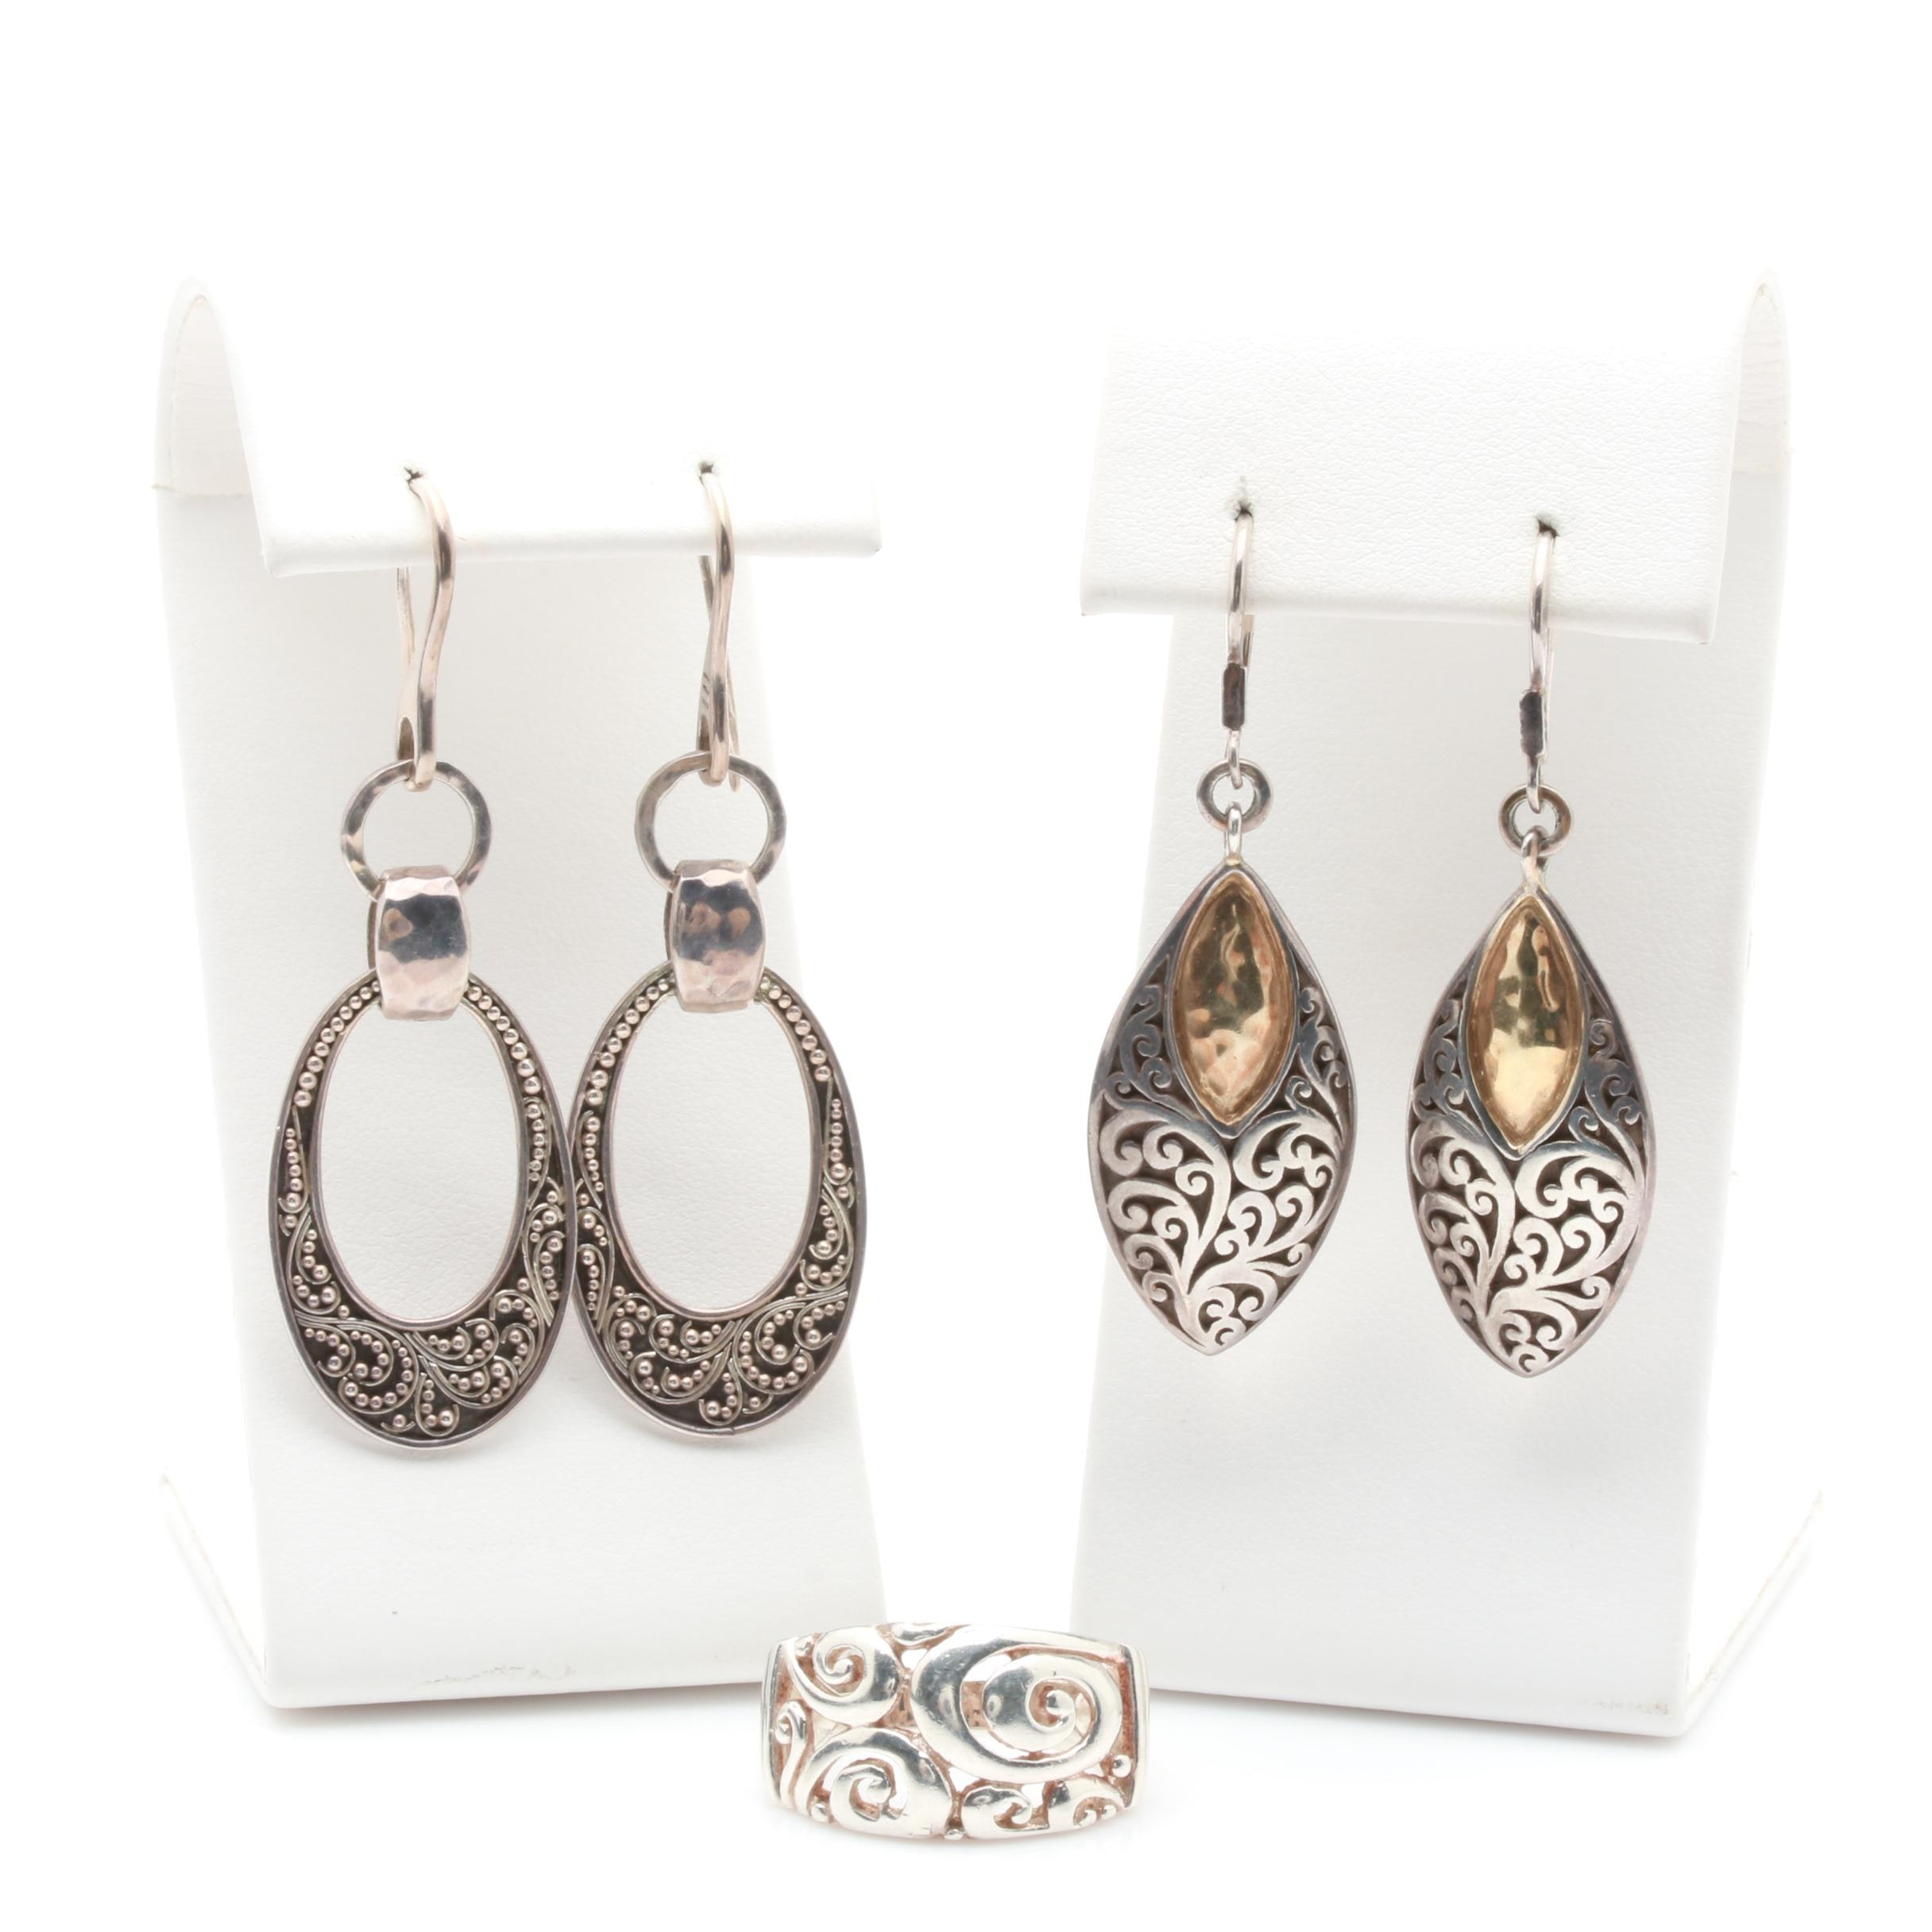 Sterling Silver Earrings and Ring Featuring Lois Hill